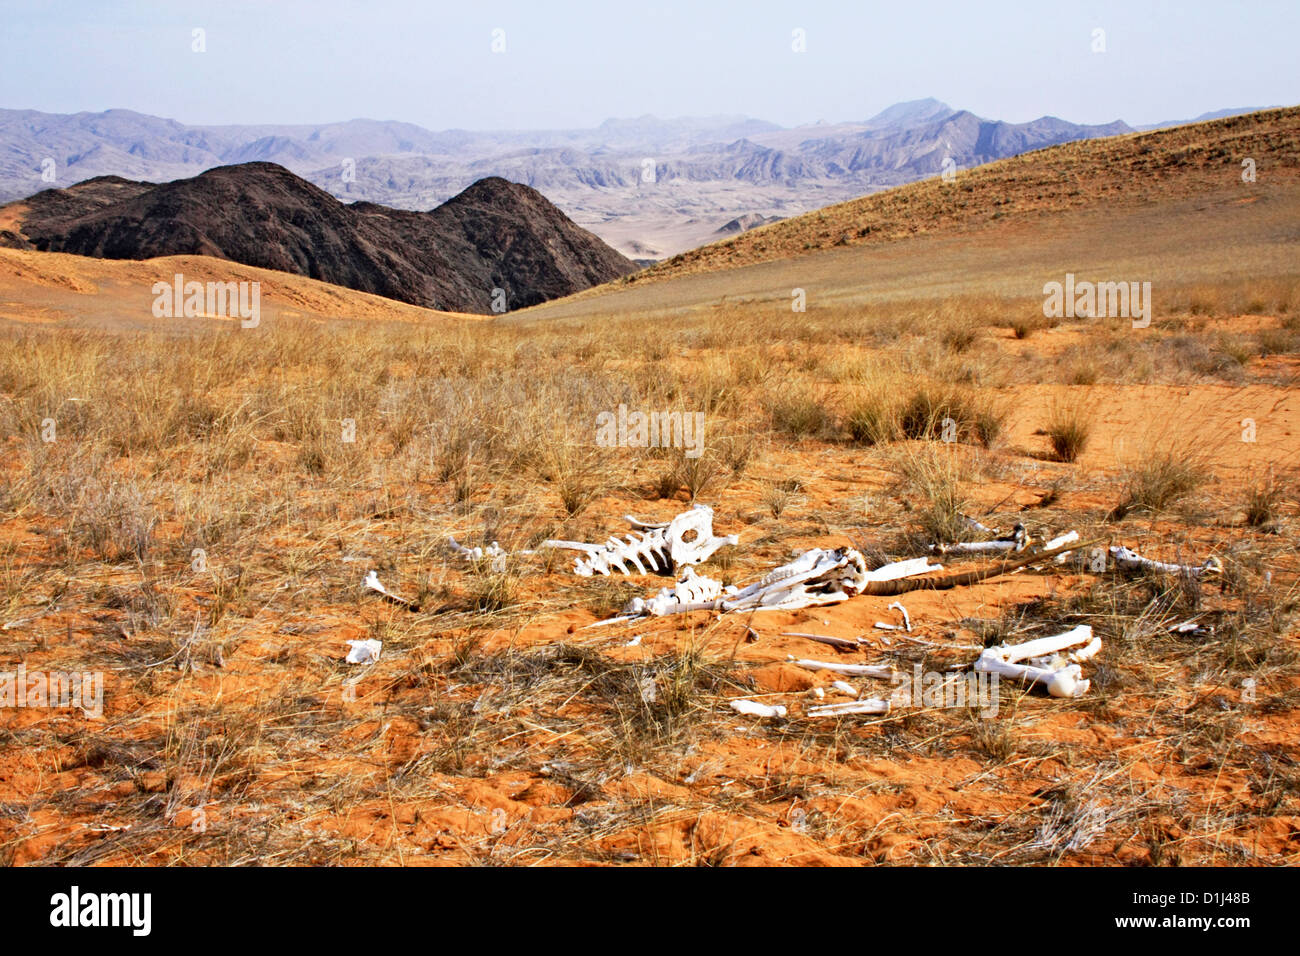 Death in the Hartman Mountains, Northern Namibia - Stock Image